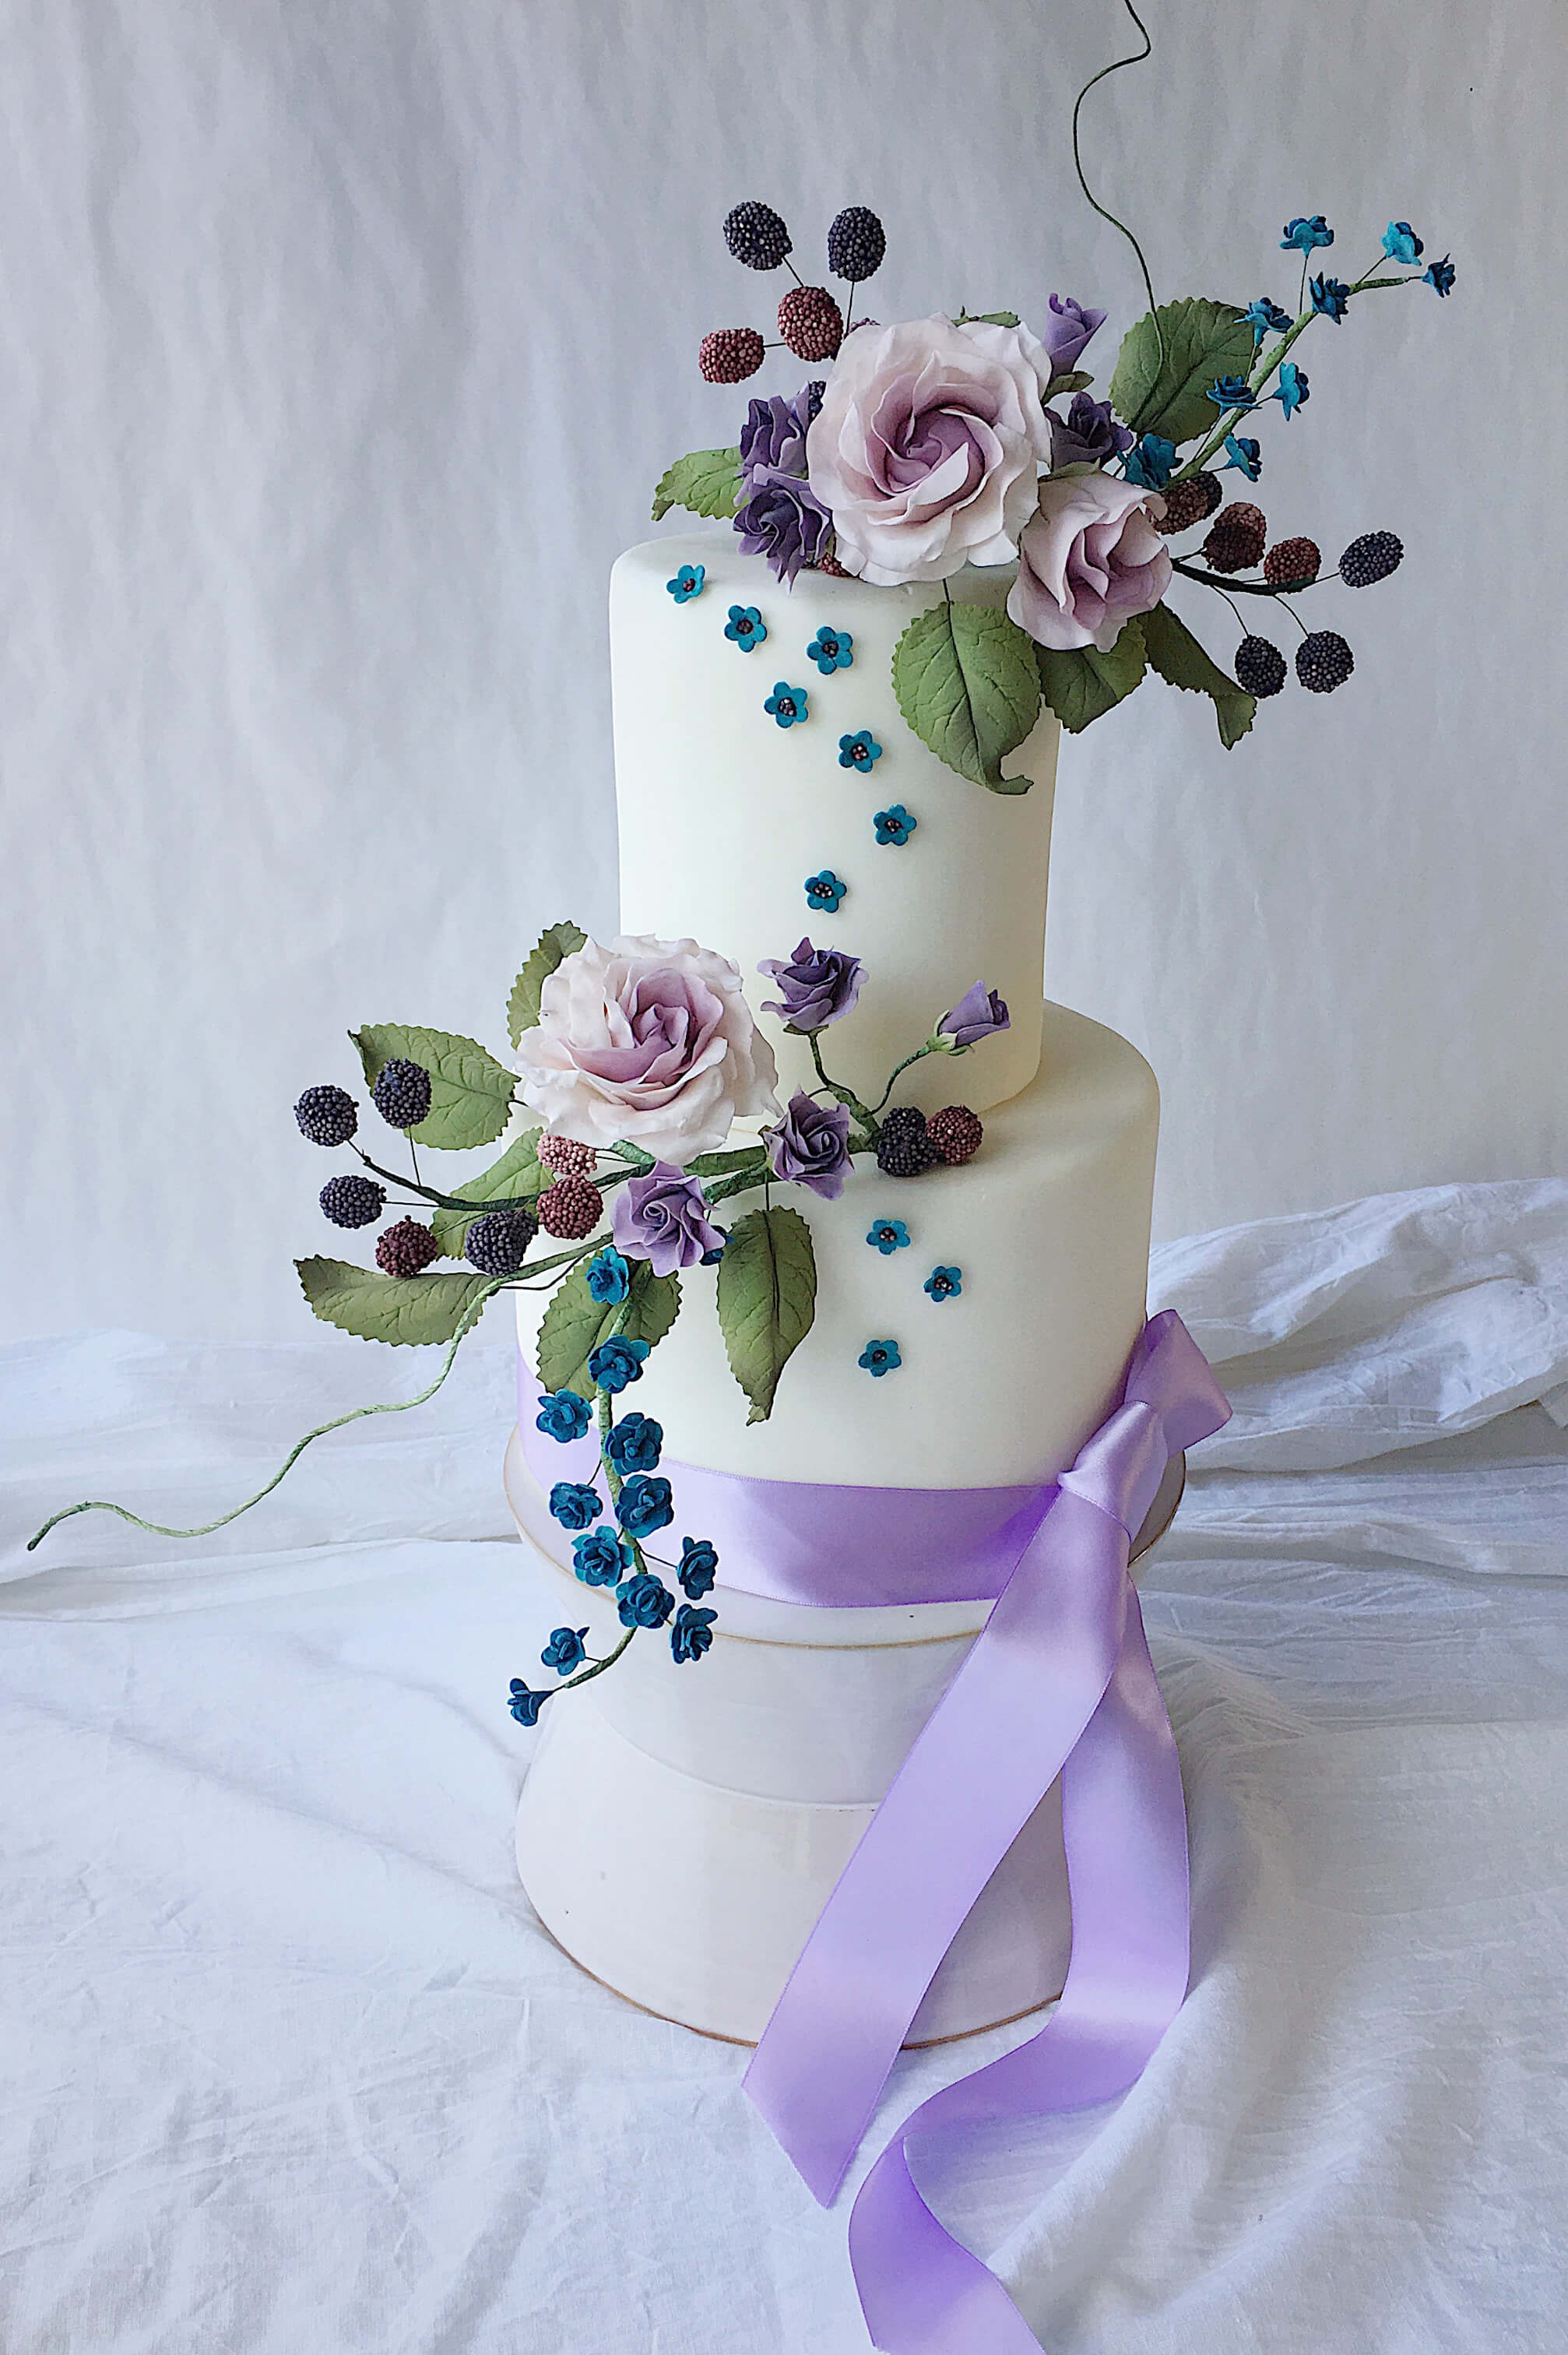 moody sugar flowers berries tiered wedding cake.jpeg